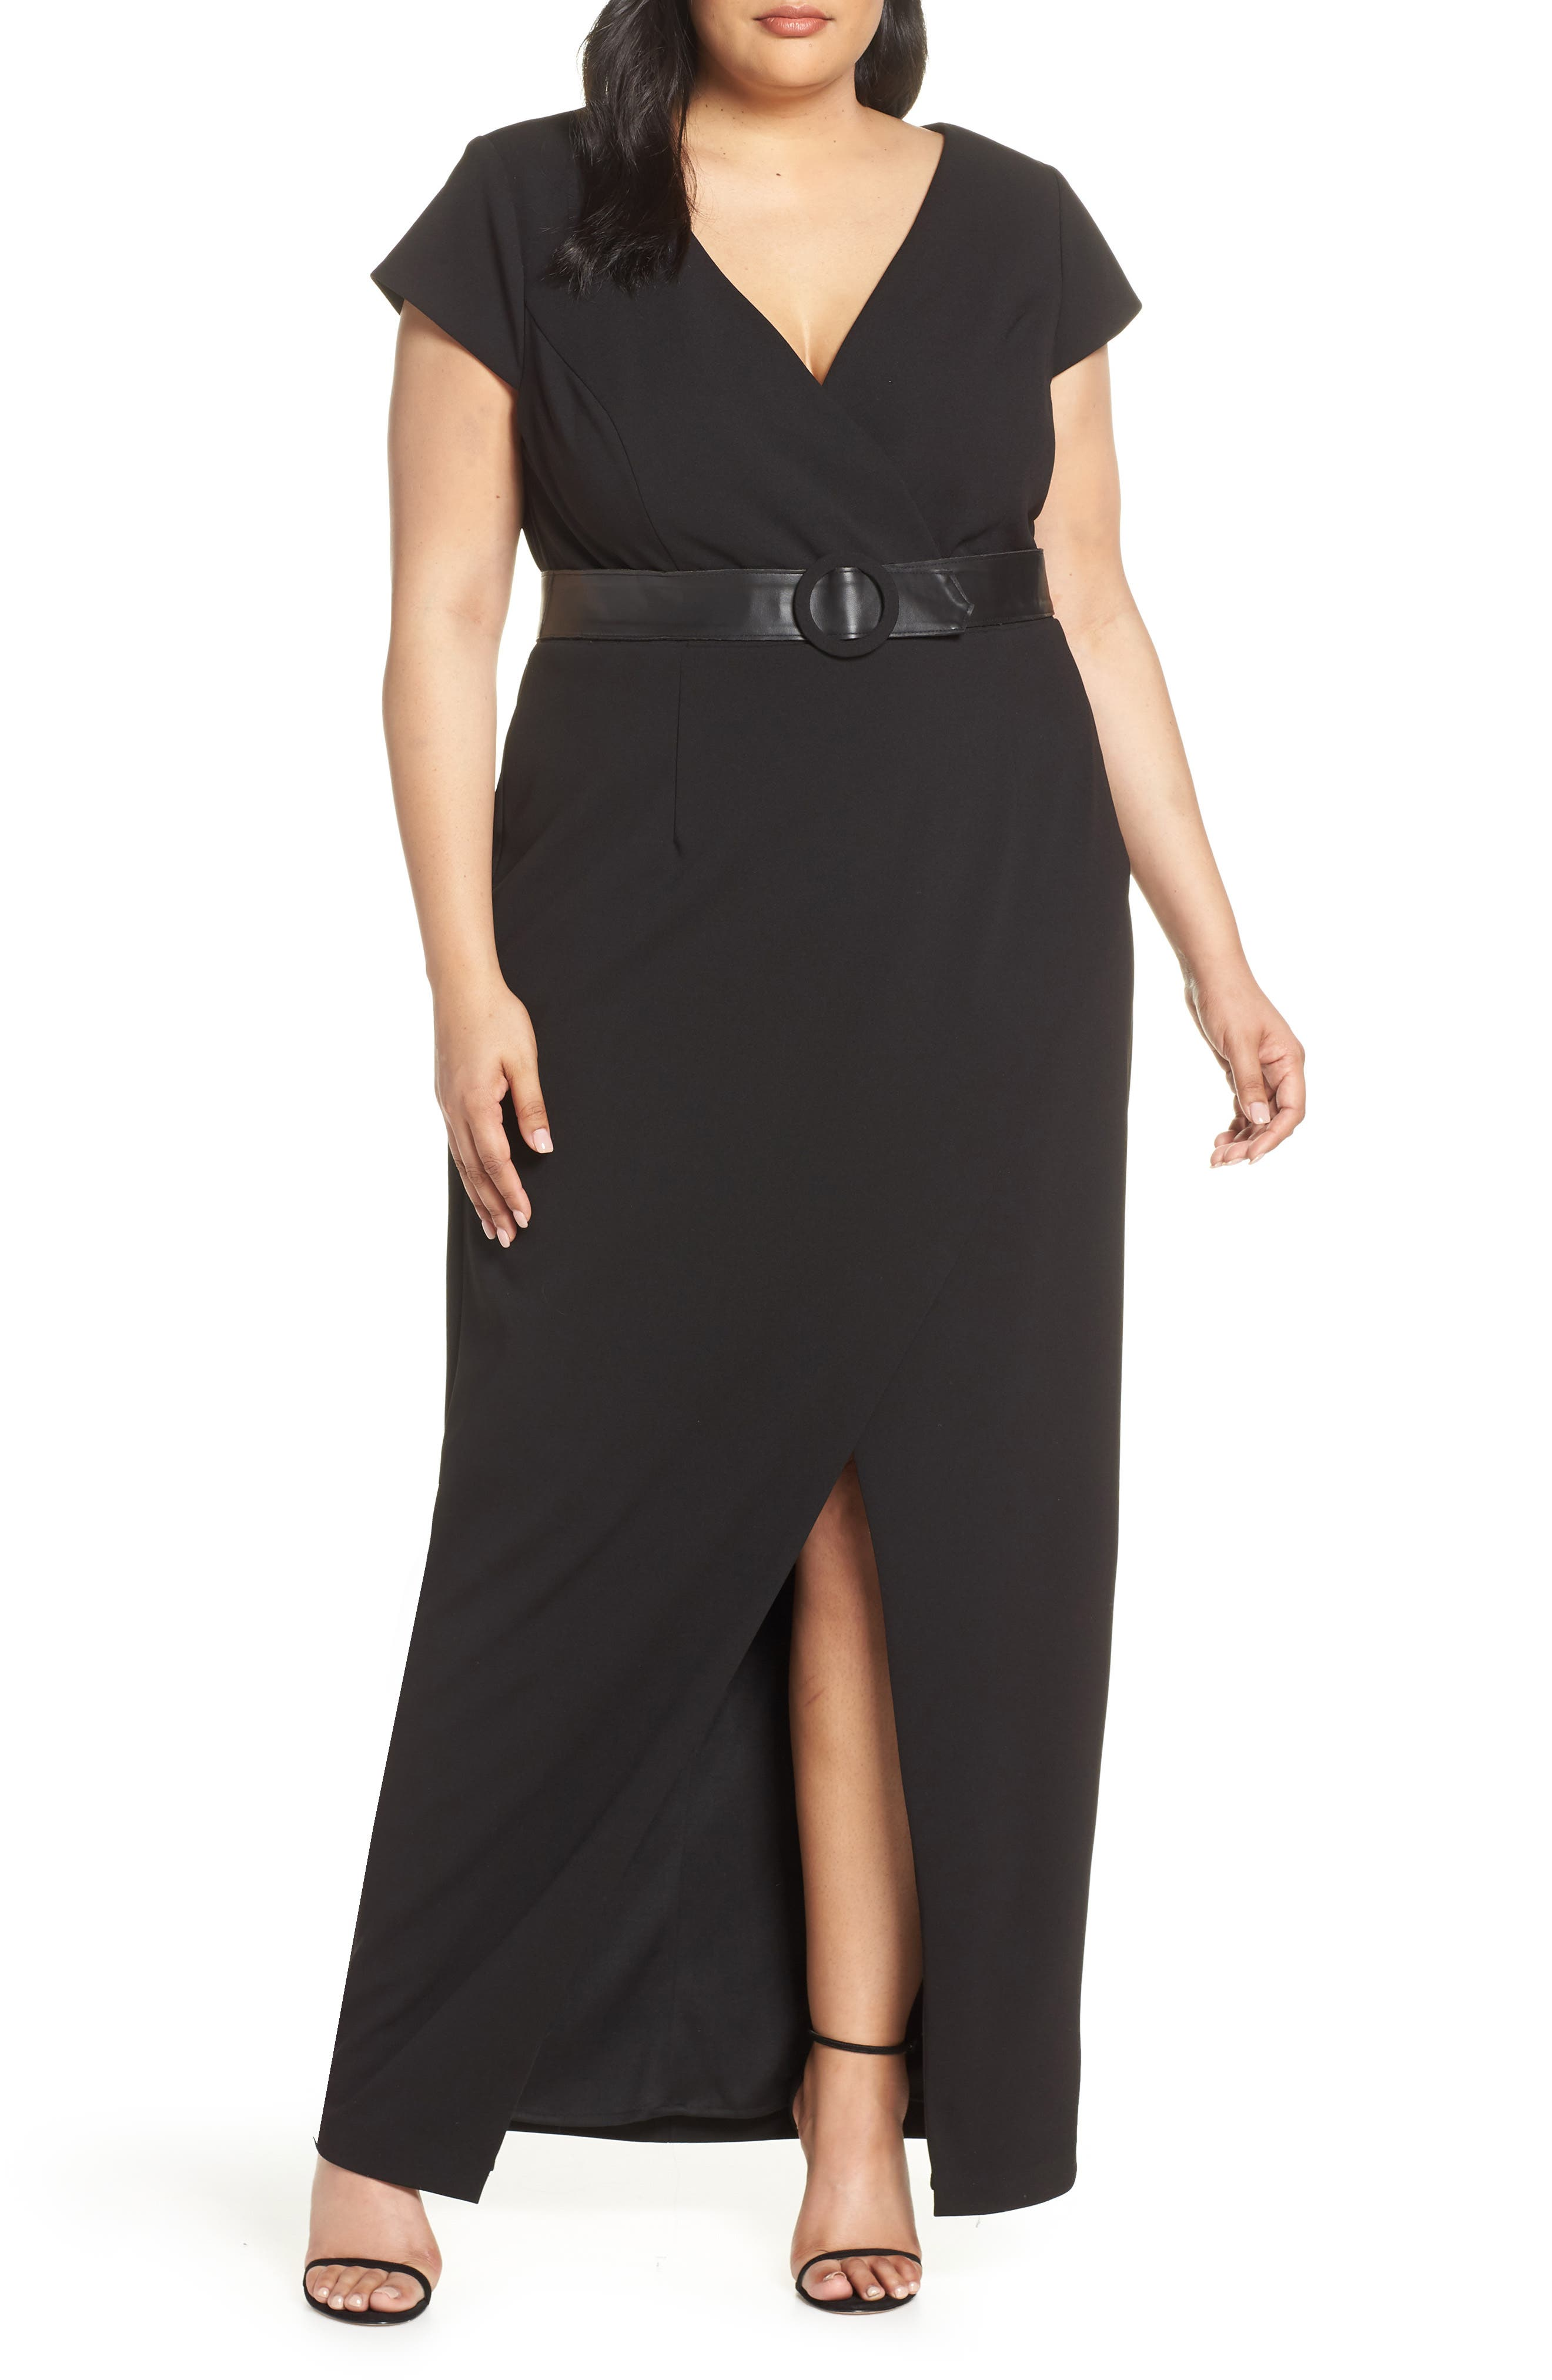 Plus Size Vince Camuto Belted V-Neck Evening Dress, Black